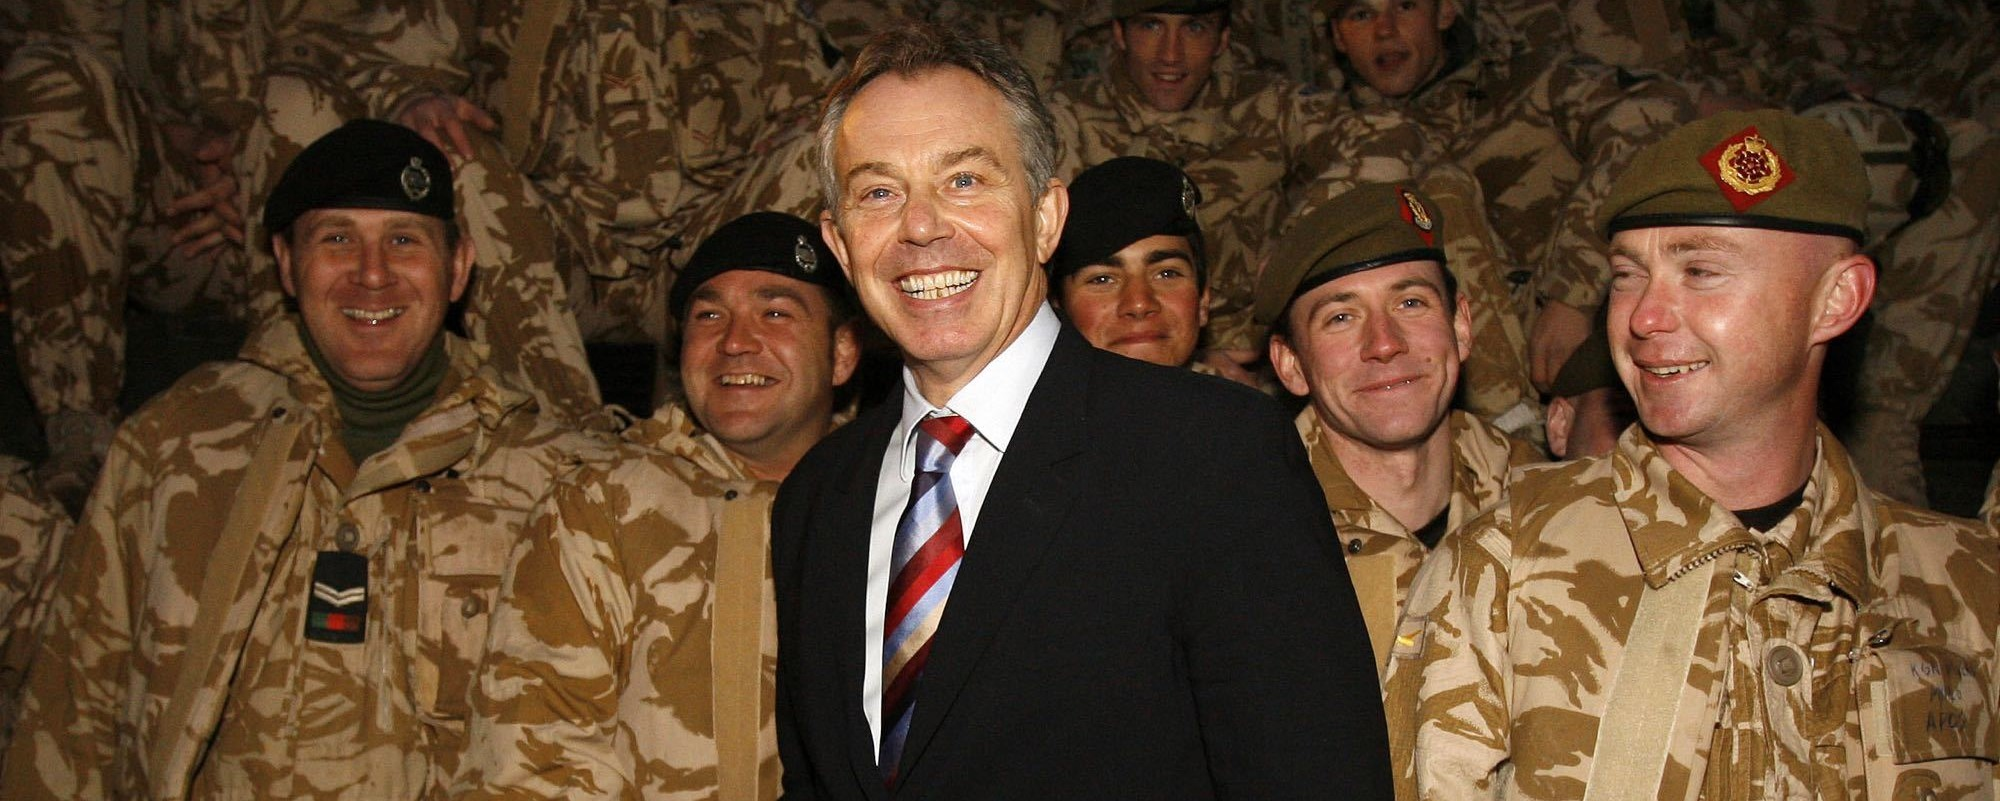 Iraq war report could get Tony Blair impeached—9 years after he left office